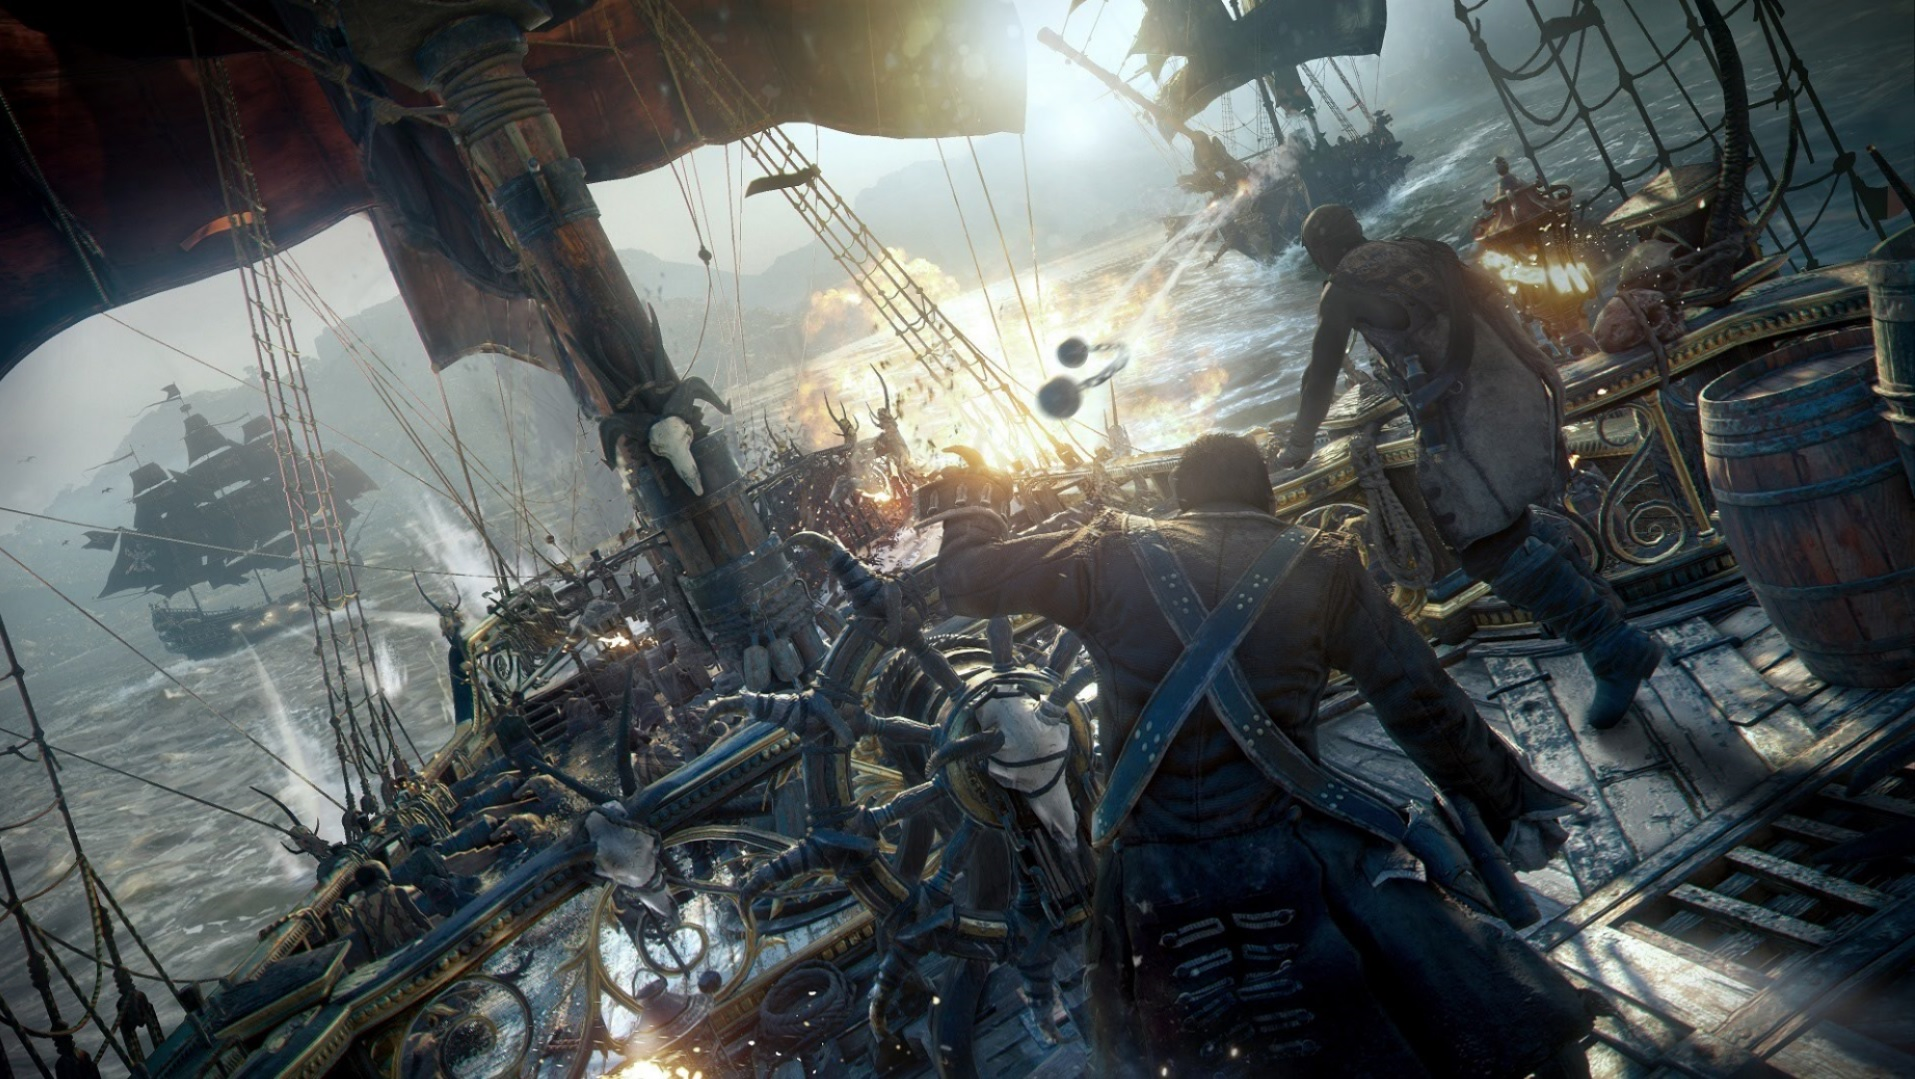 Skull Bones has reportedly been turned into a live service game